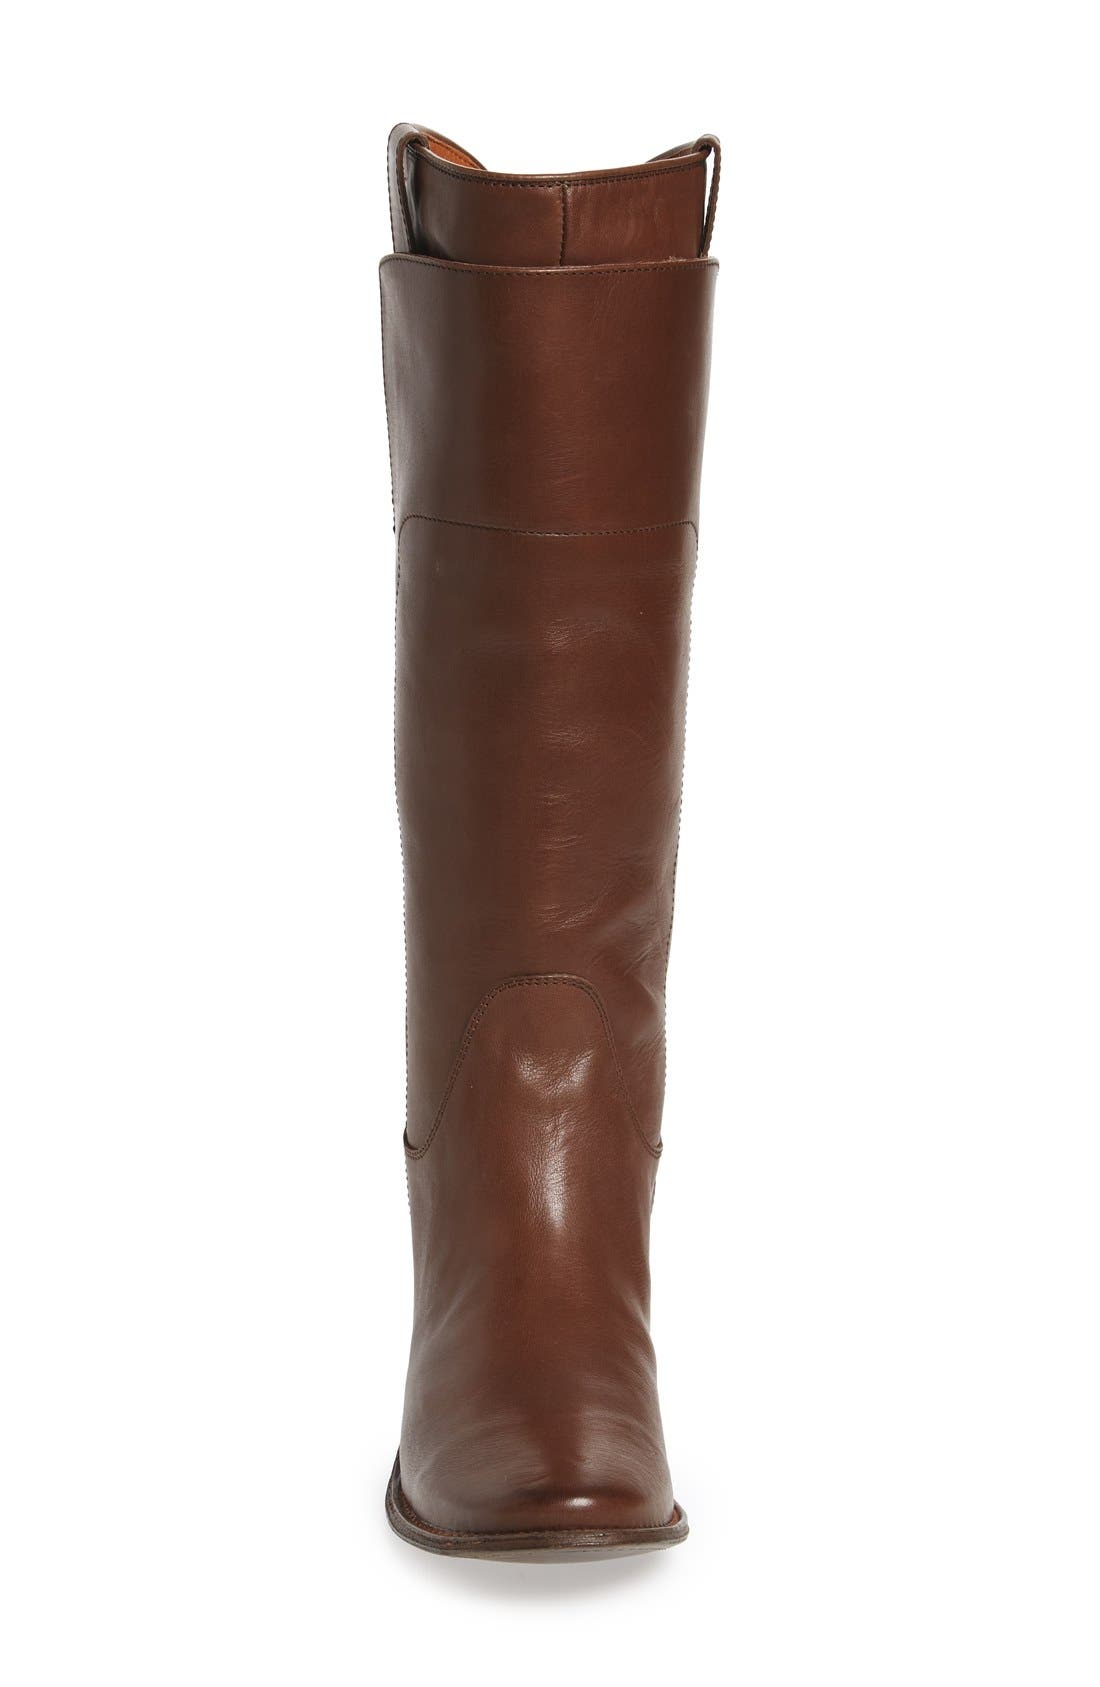 Alternate Image 3  - Frye 'Paige' Tall Riding Boot (Women) (Wide Calf)